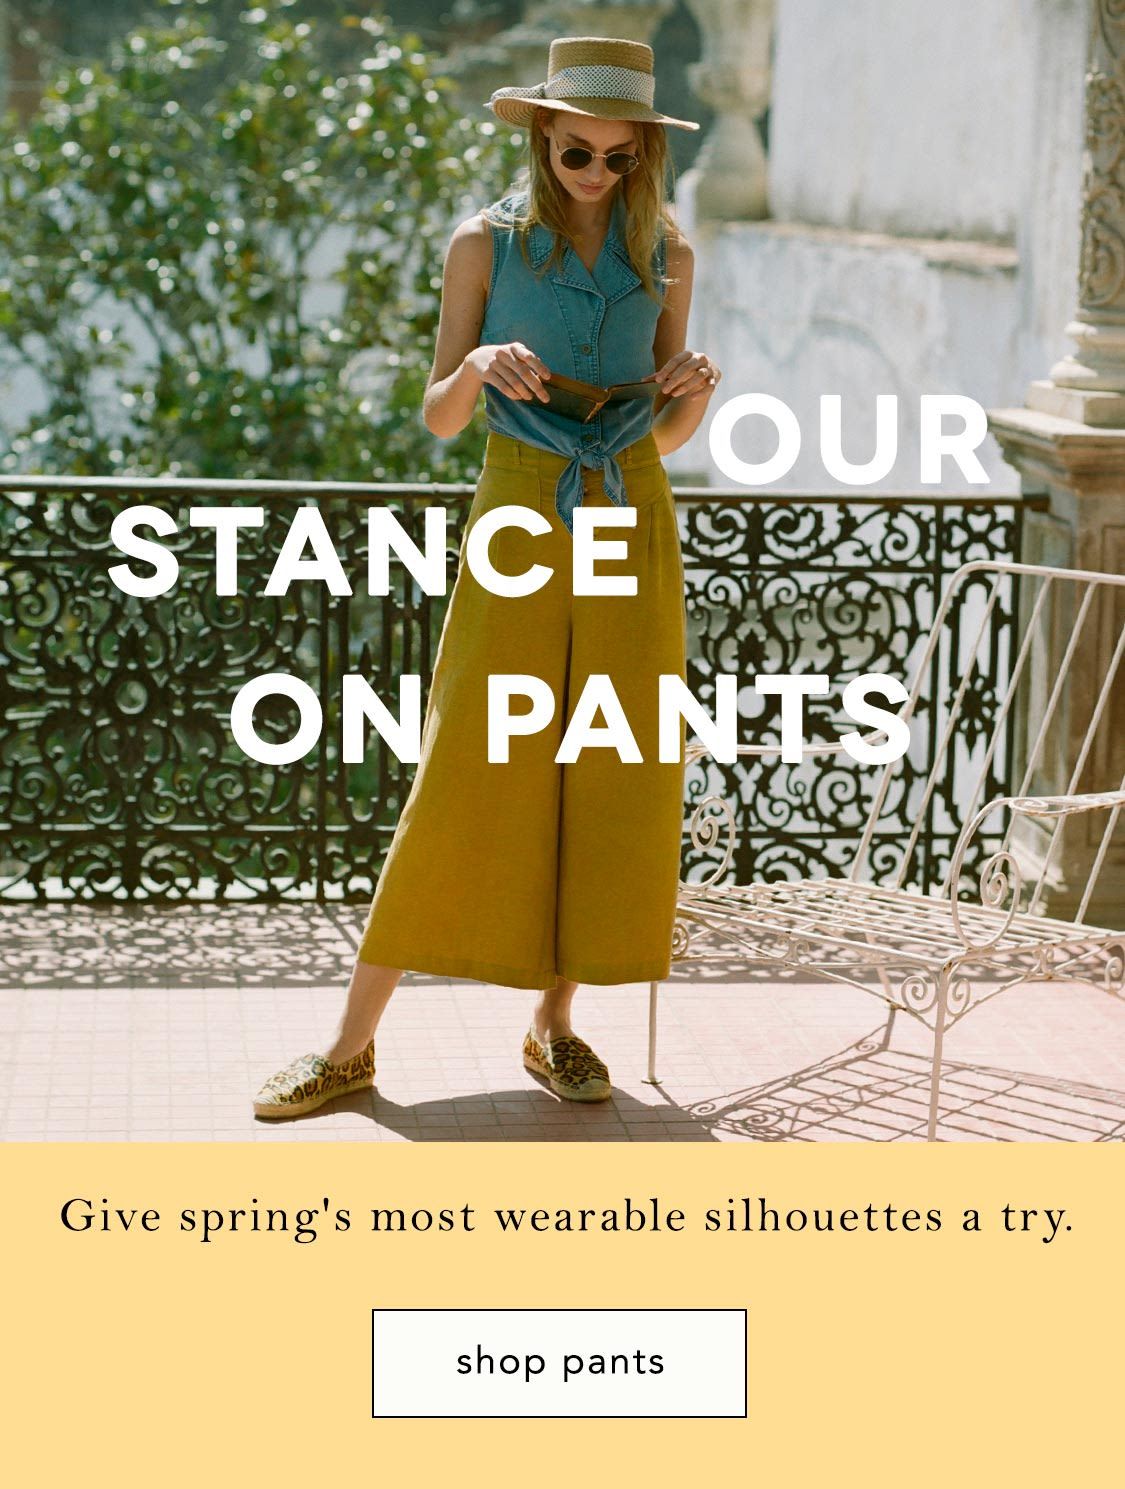 Anthropologie - Women s Clothing, Accessories   Home 19c6300b8f